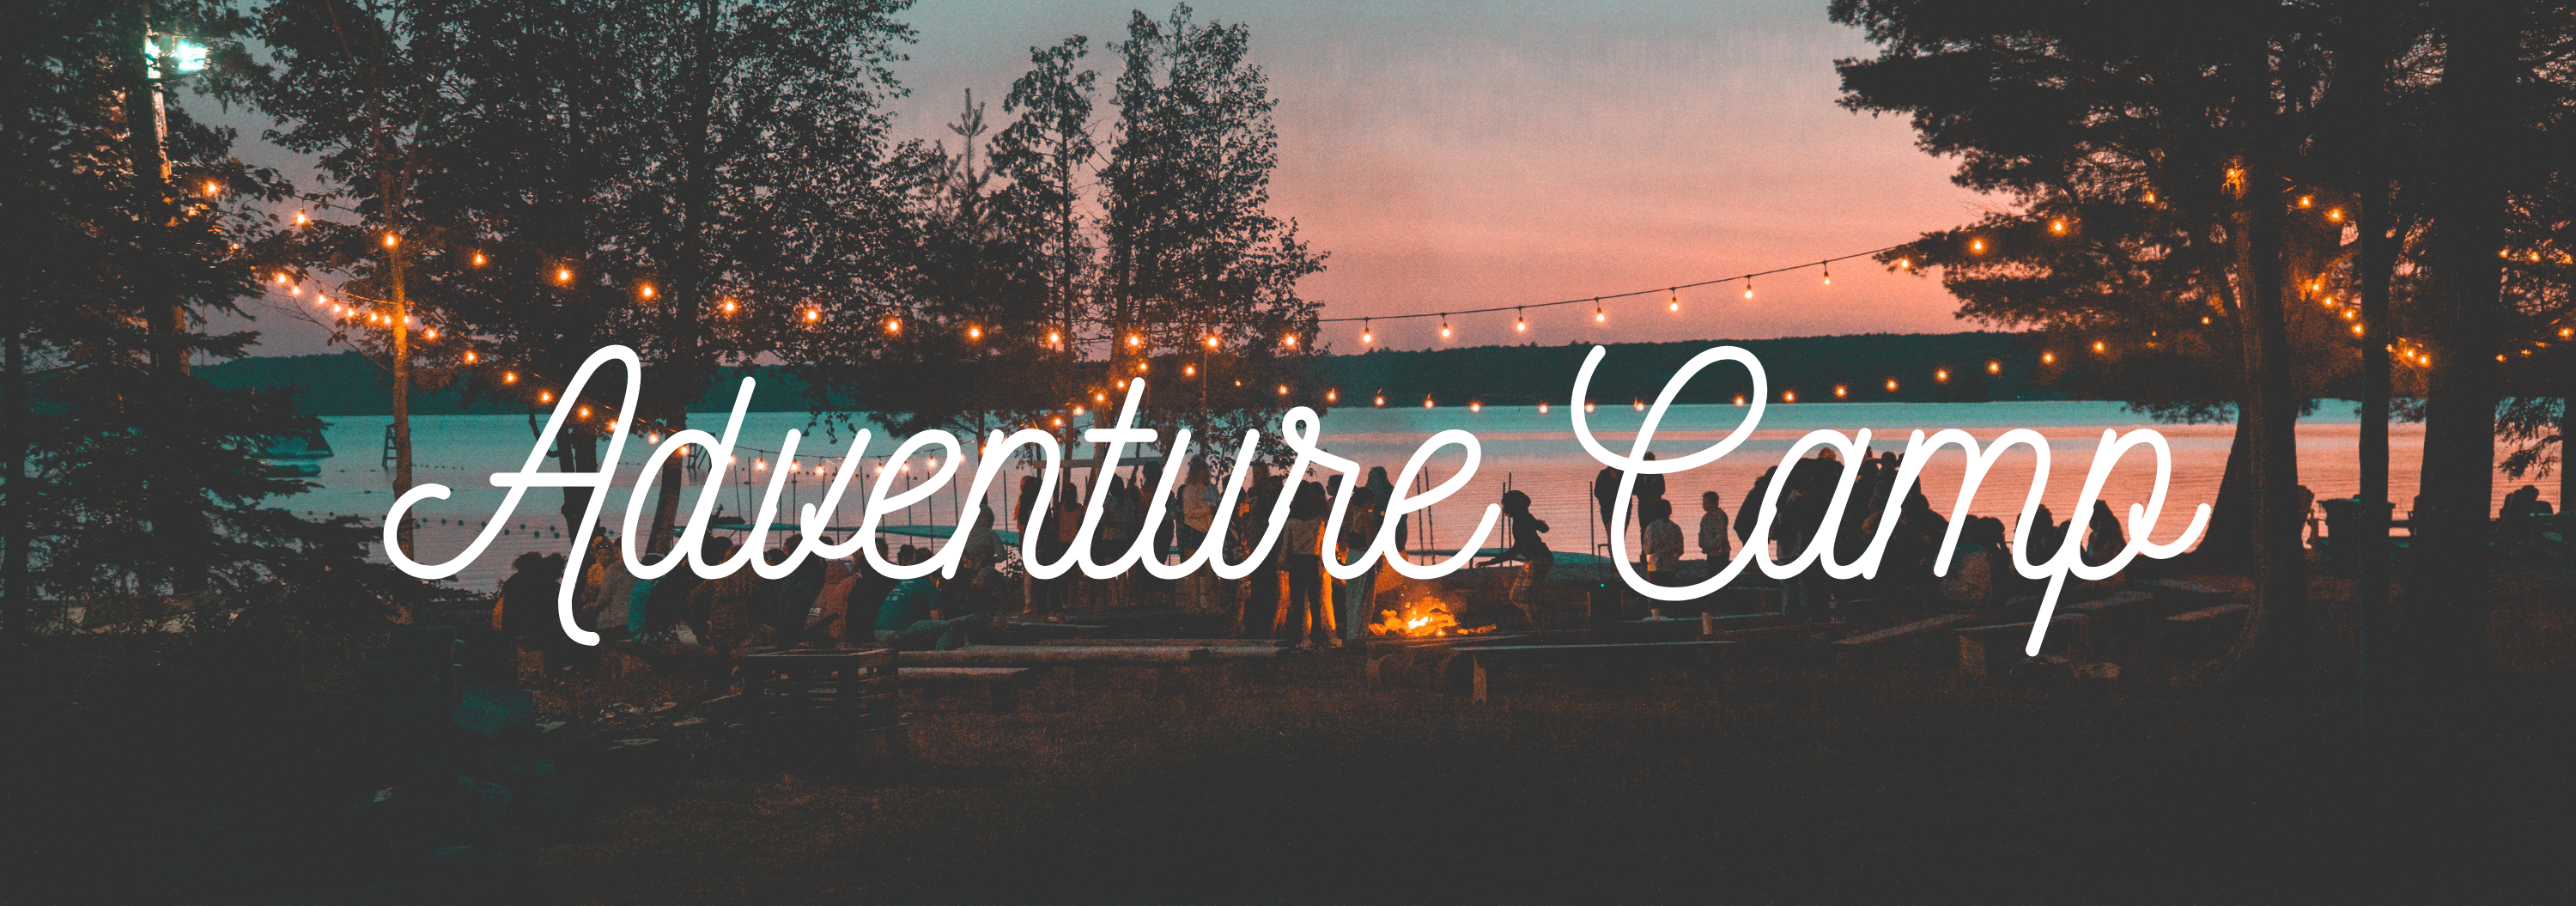 Camping Rotated Script Tumblr Banner